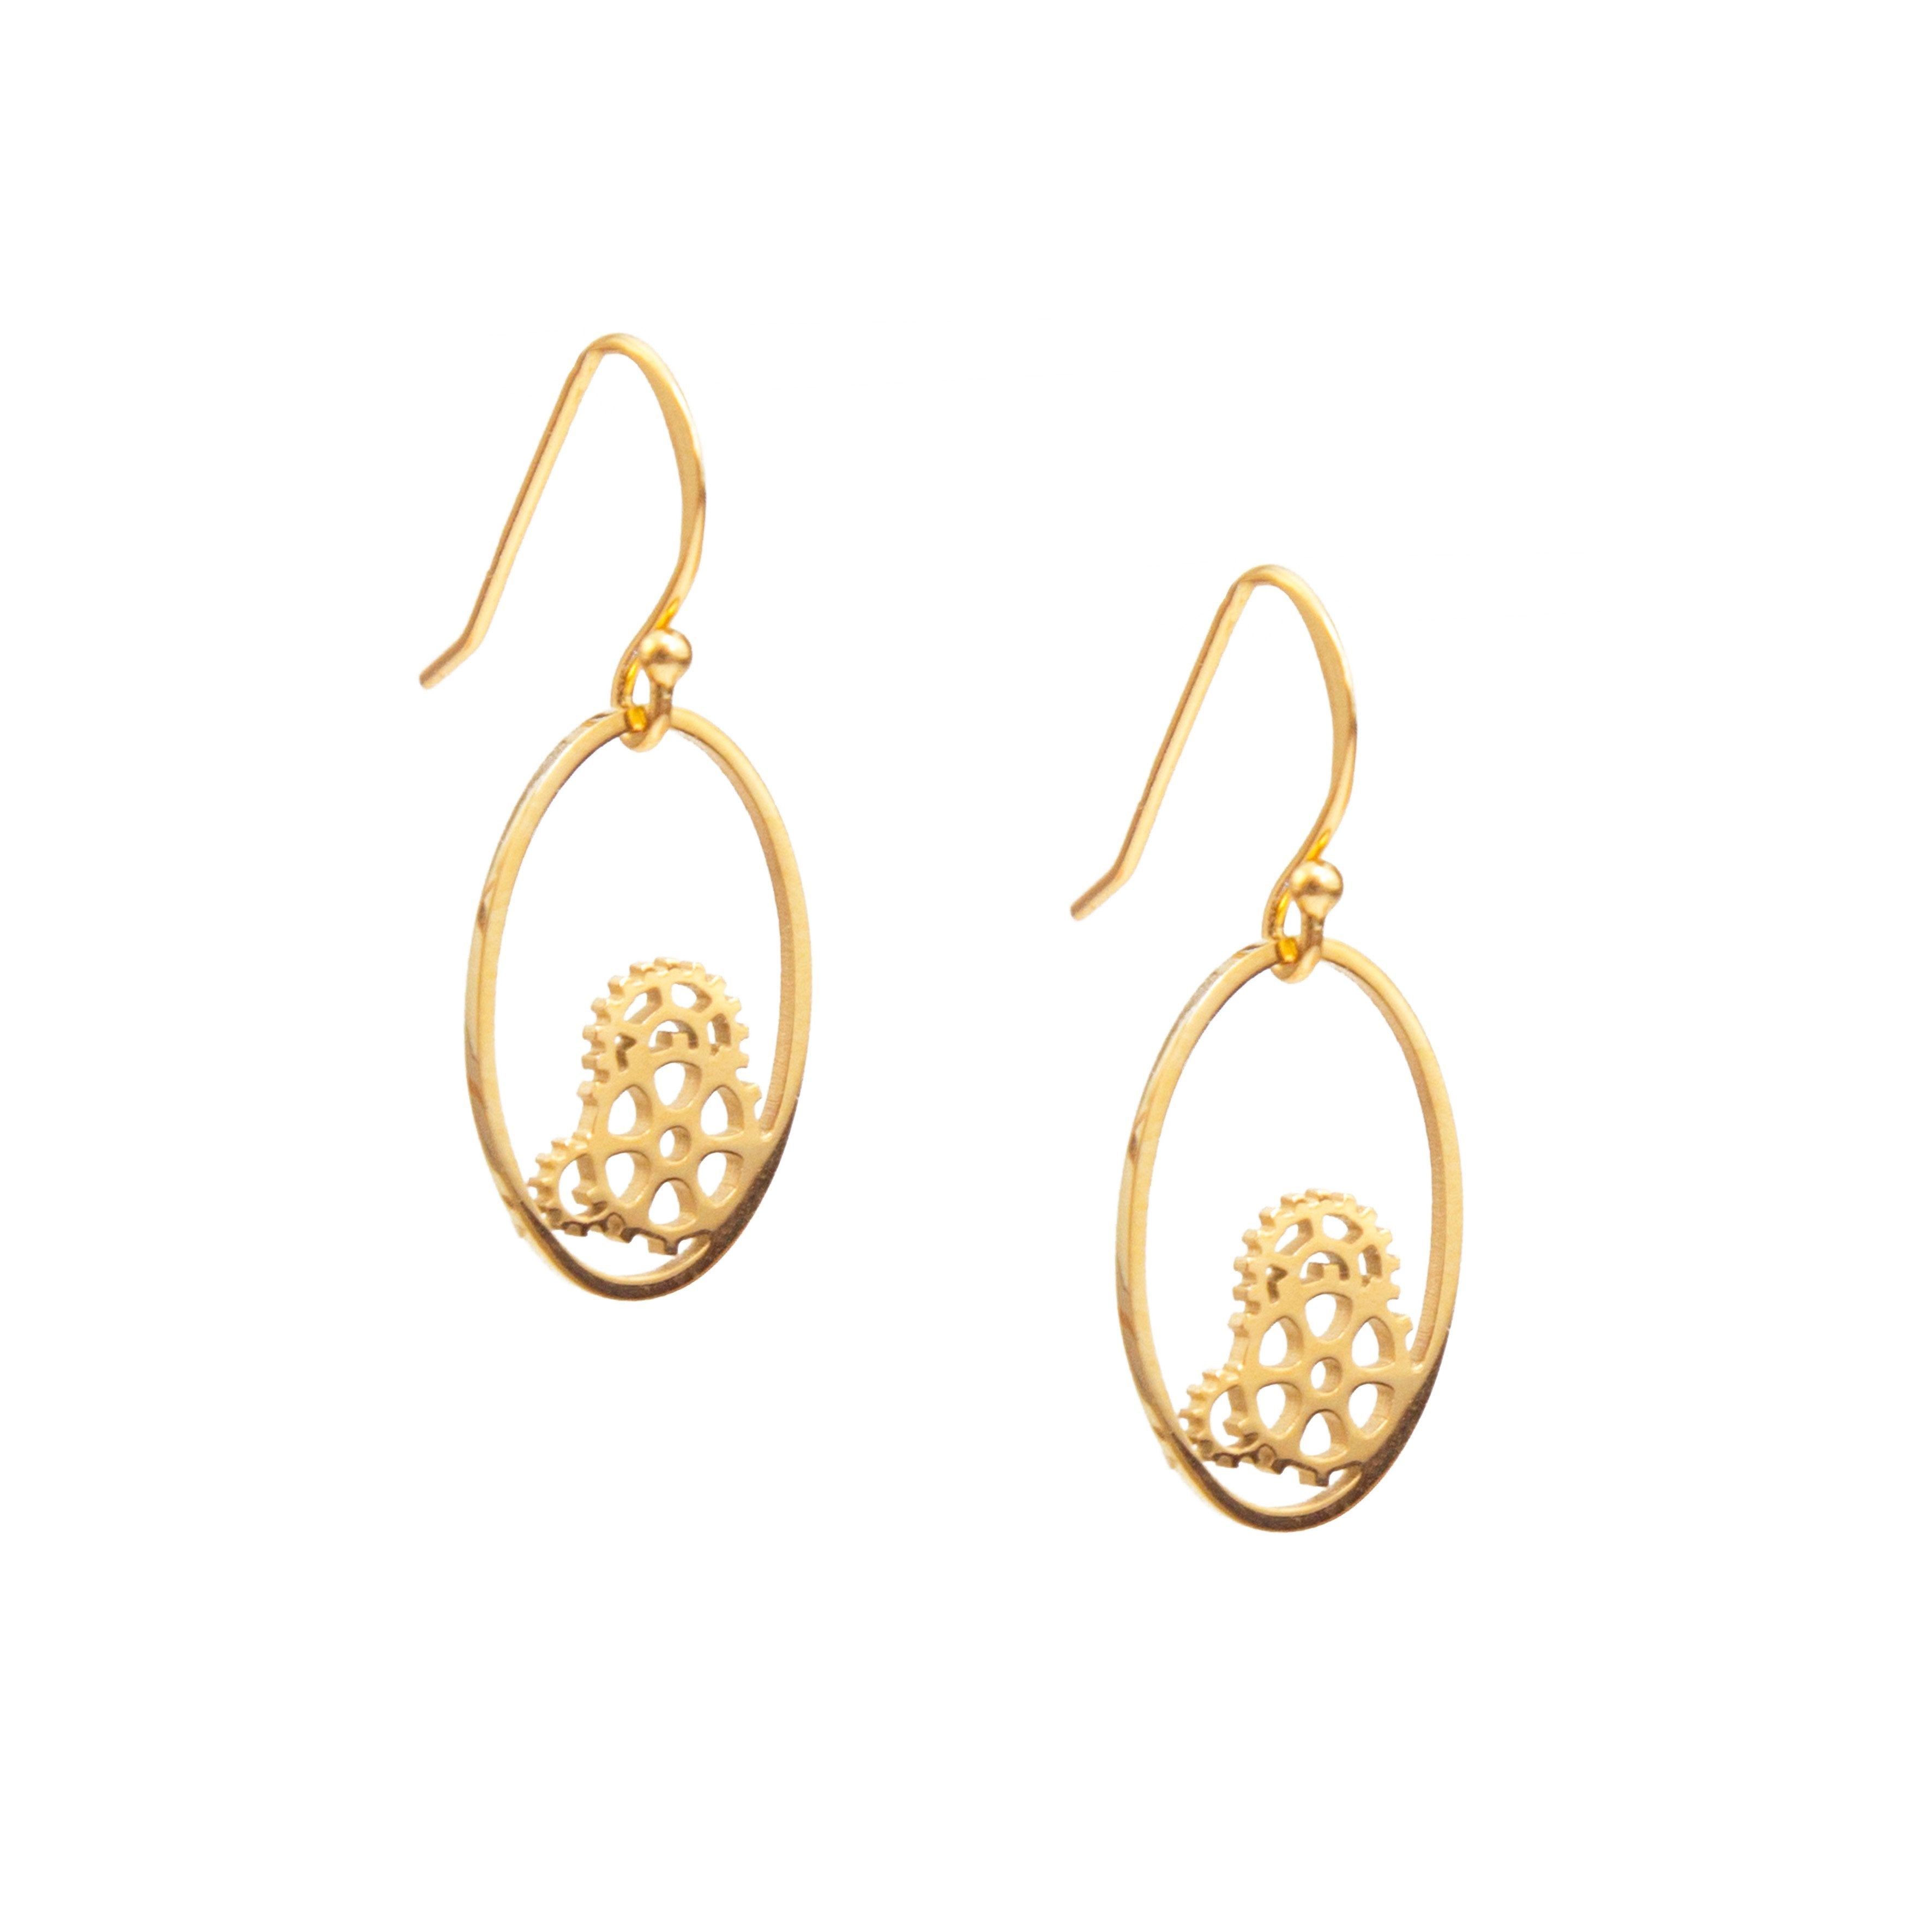 Cogs of Justice Earrings